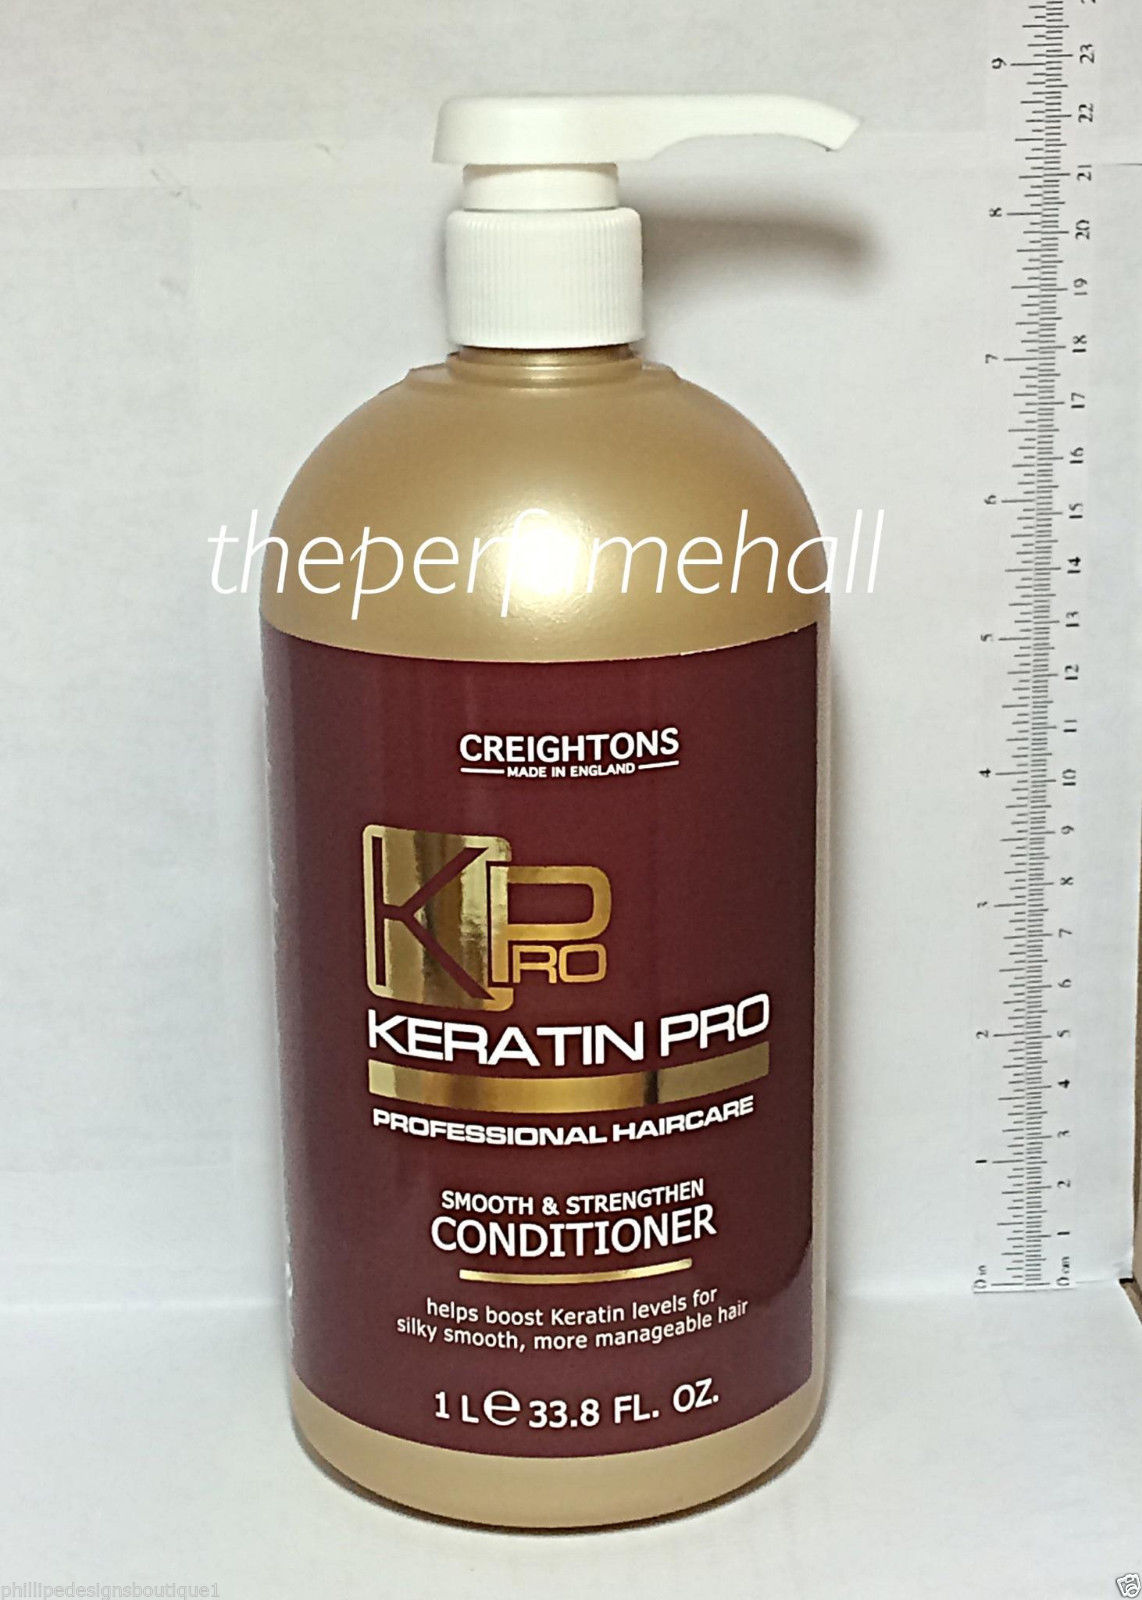 Creightons K PRO Keratin Pro Conditioner Boost Keratin Levels All Hair Types